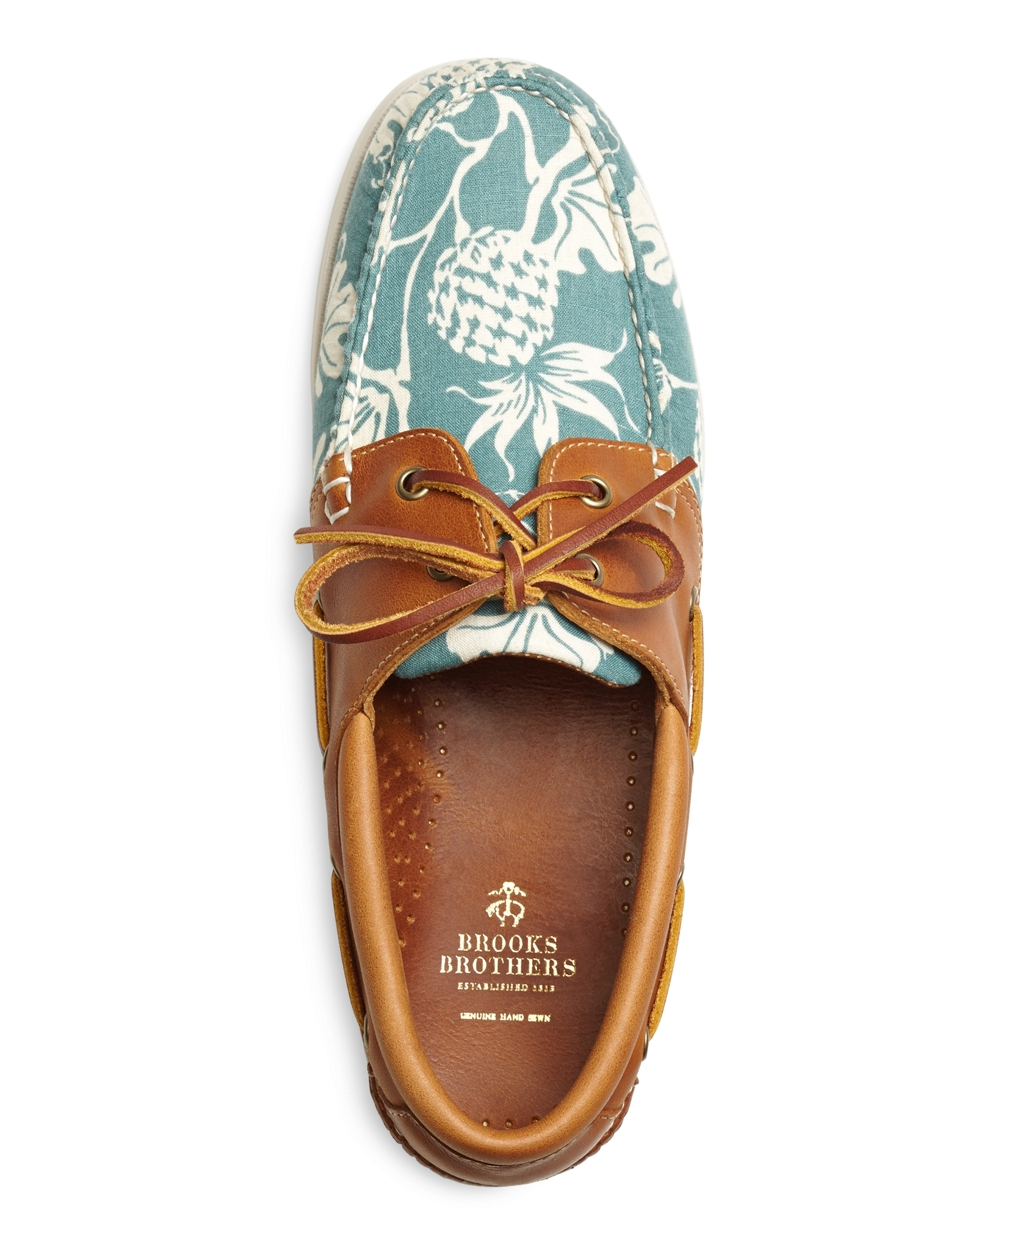 41f5295e0ed Lyst - Brooks Brothers Pineapple Print Boat Shoes in Blue for Men